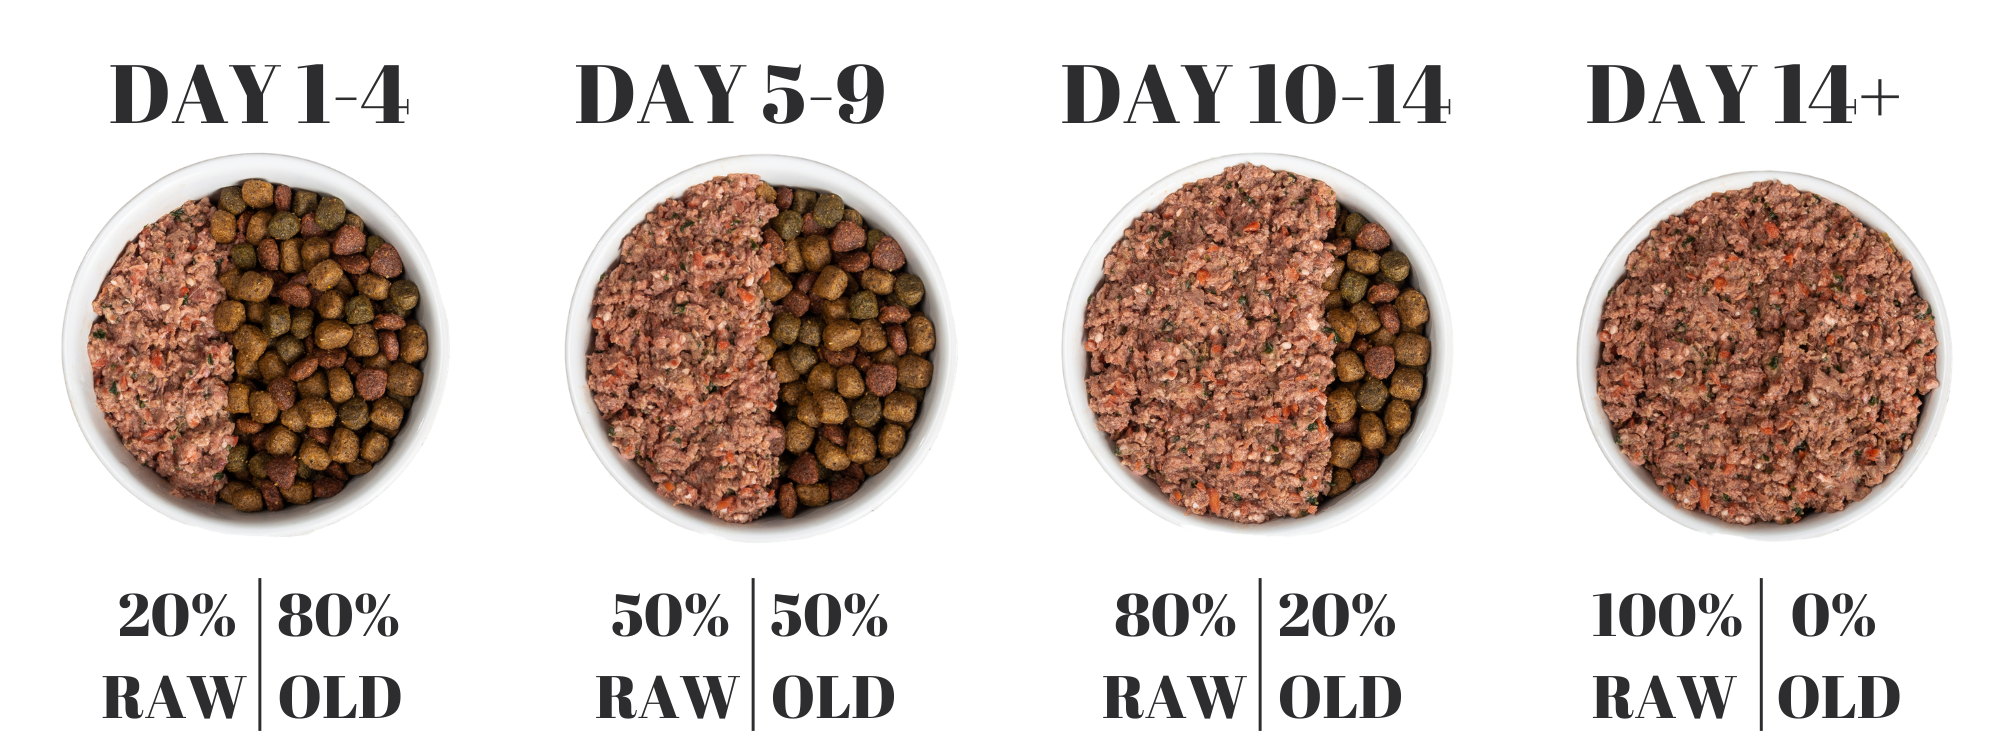 transitioning your puppy to raw diet